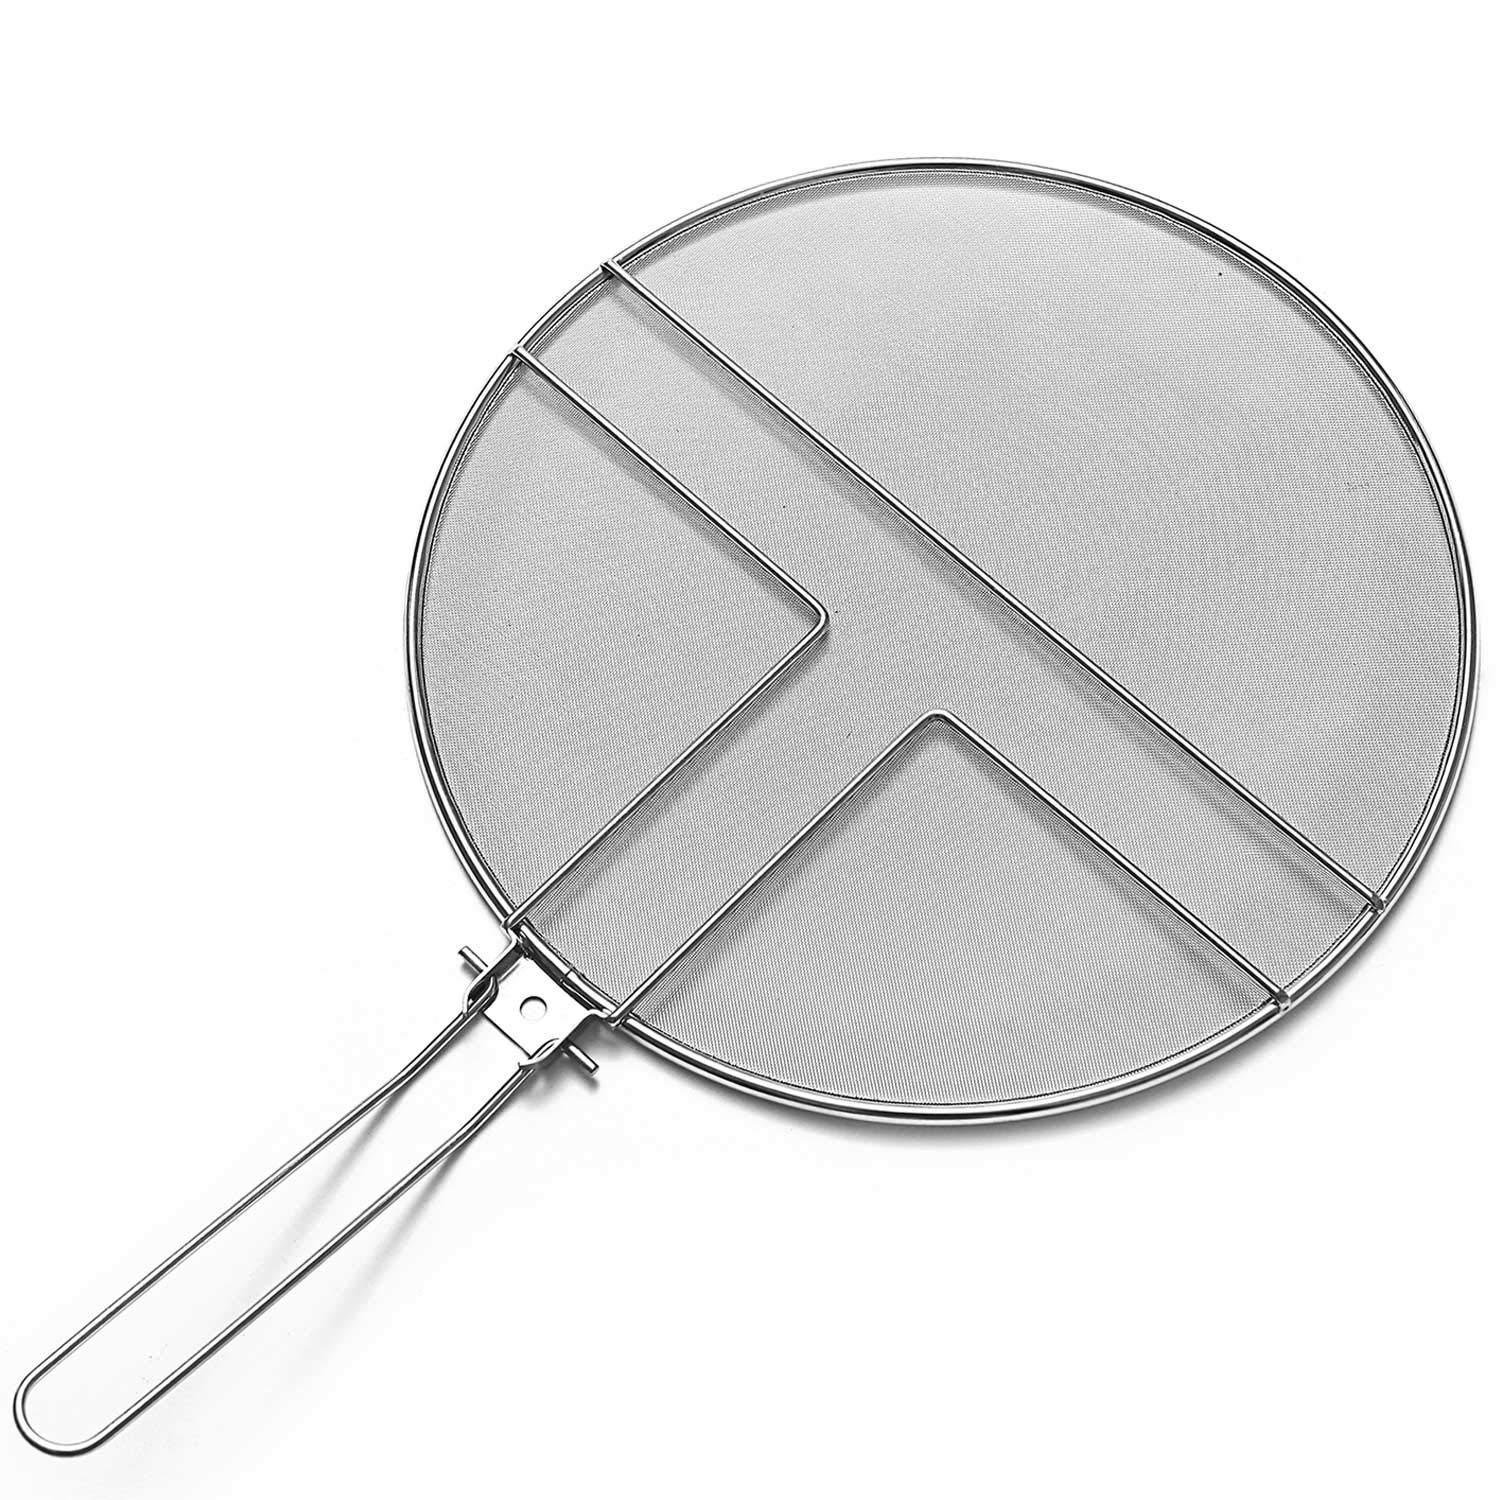 13 inch Grease Splatter Guard by Centh Skillet Stainless Steel Splatter Screen for Frying Pan Folding Handle for Cooking or Cast Iron with Mesh Grease Pan Cover-Heavy Duty Round Frying Pan (13 inch)